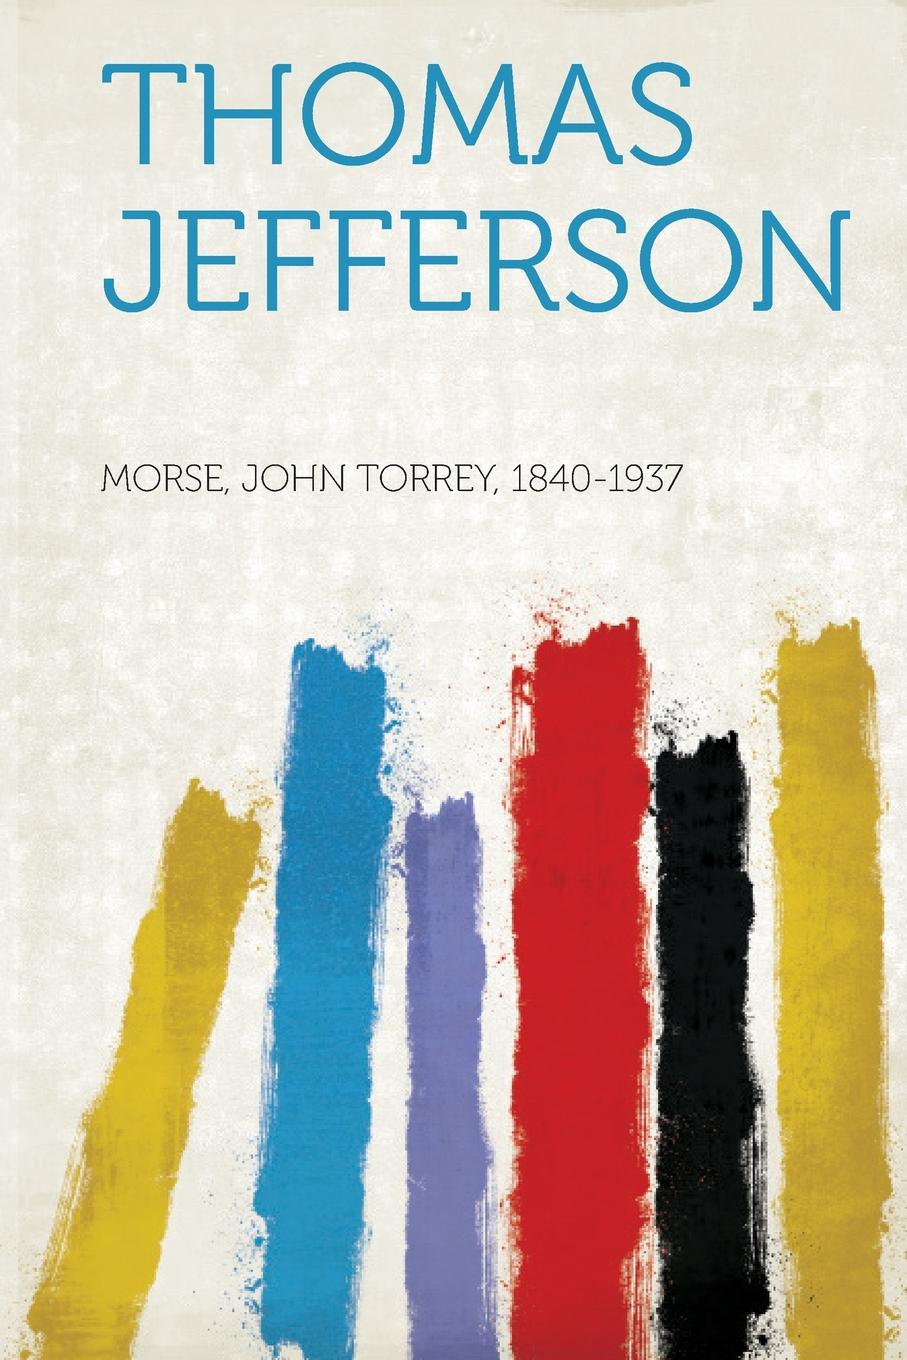 Morse John Torrey 1840-1937 Thomas Jefferson